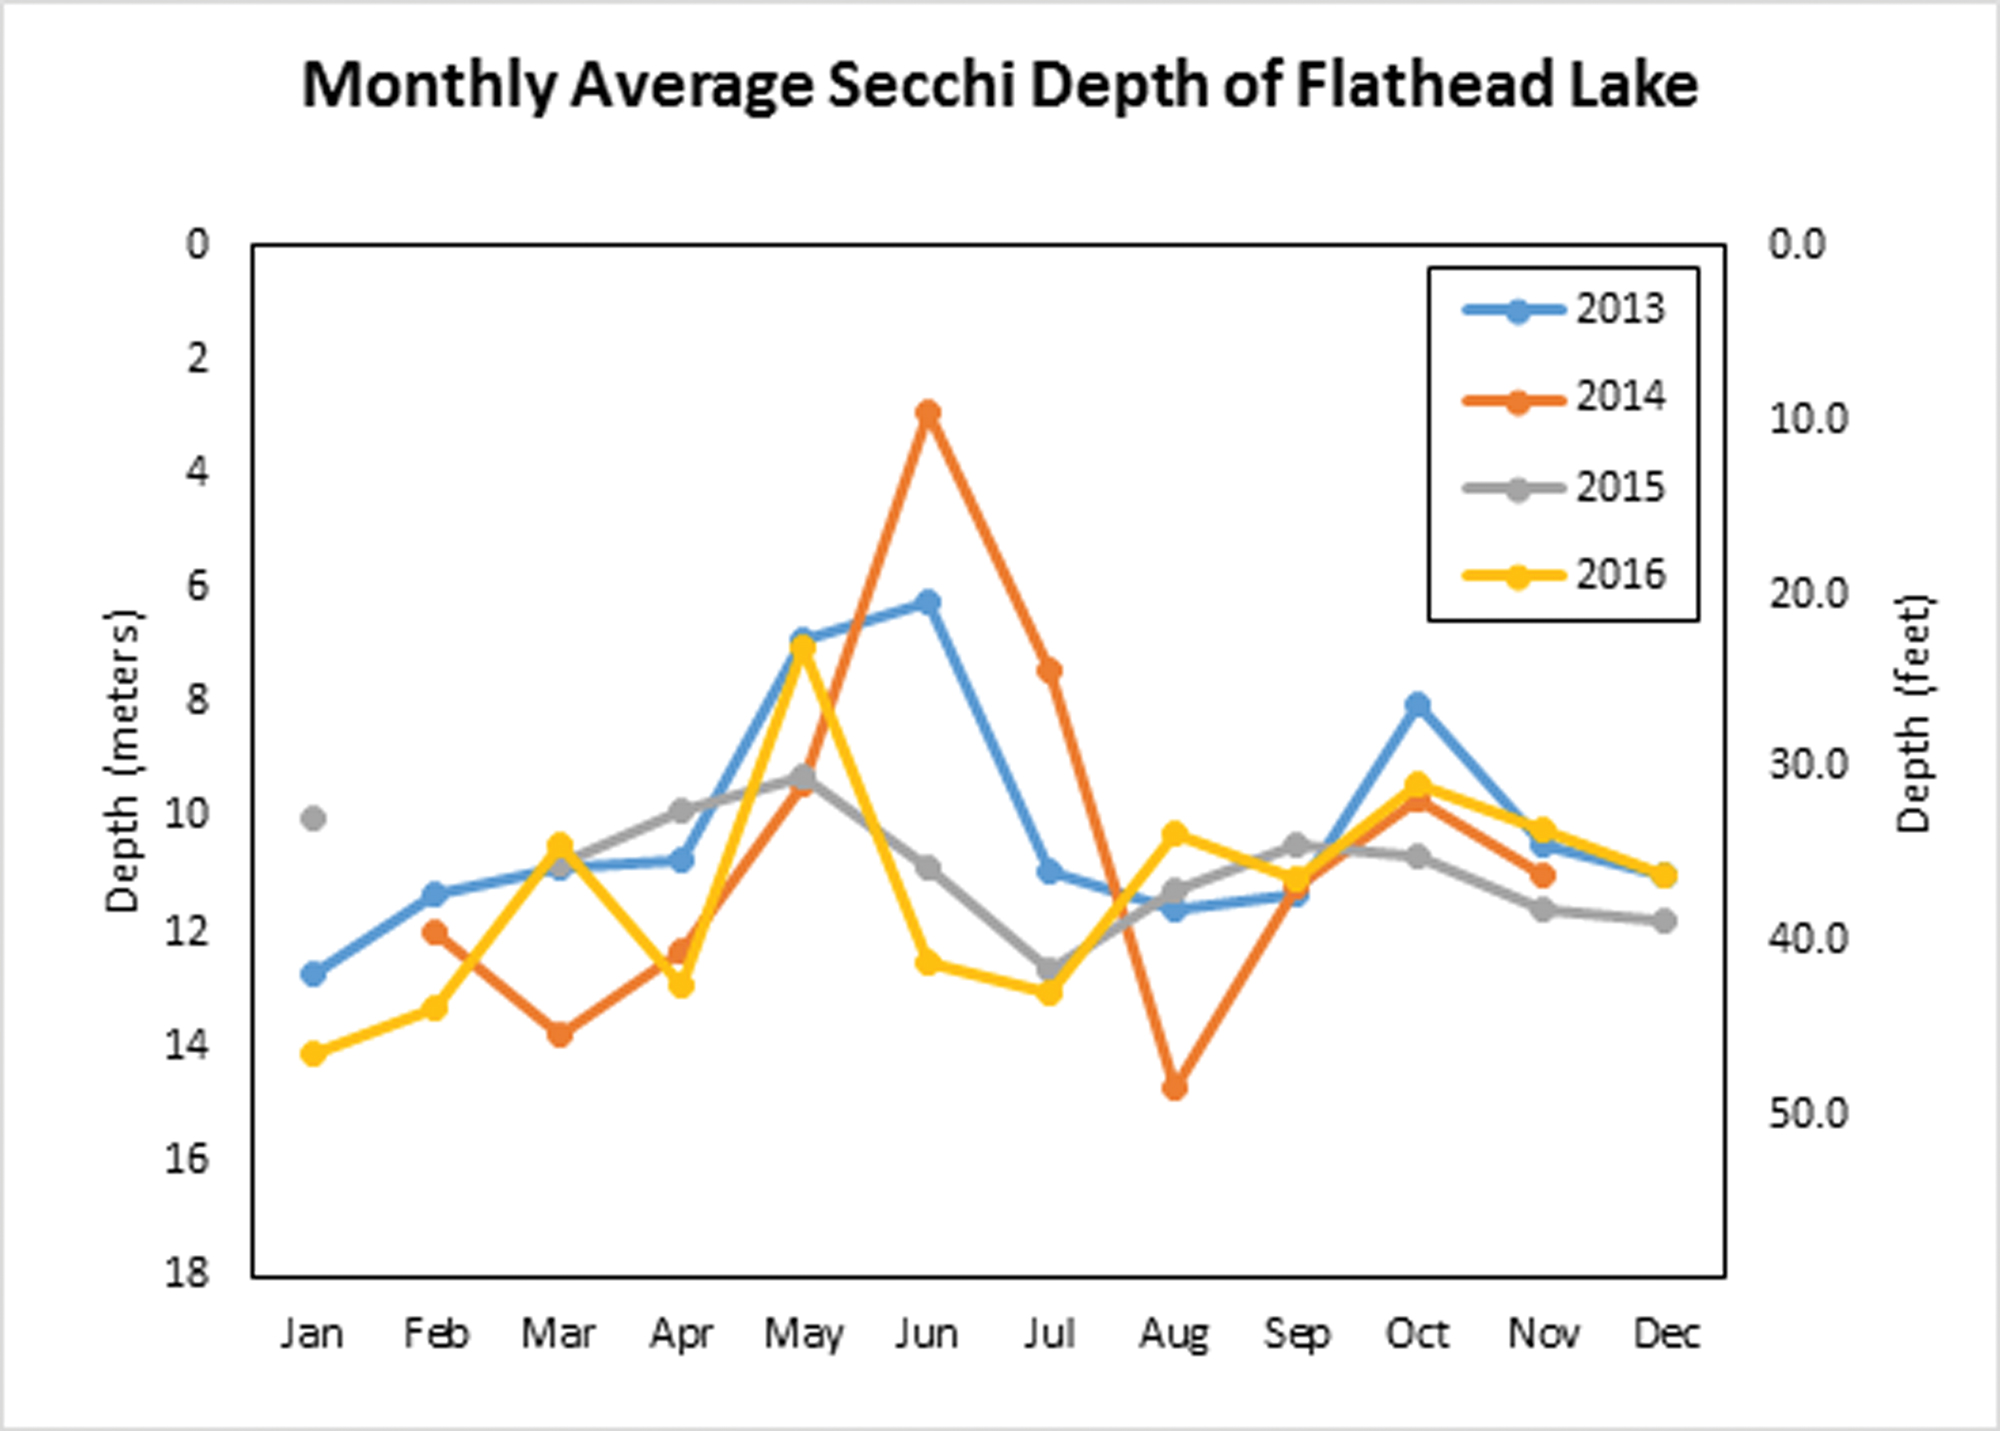 hight resolution of the monthly average secchi depth data collected by the flathead lake biological station shows that there is great seasonality to the secchi depth in